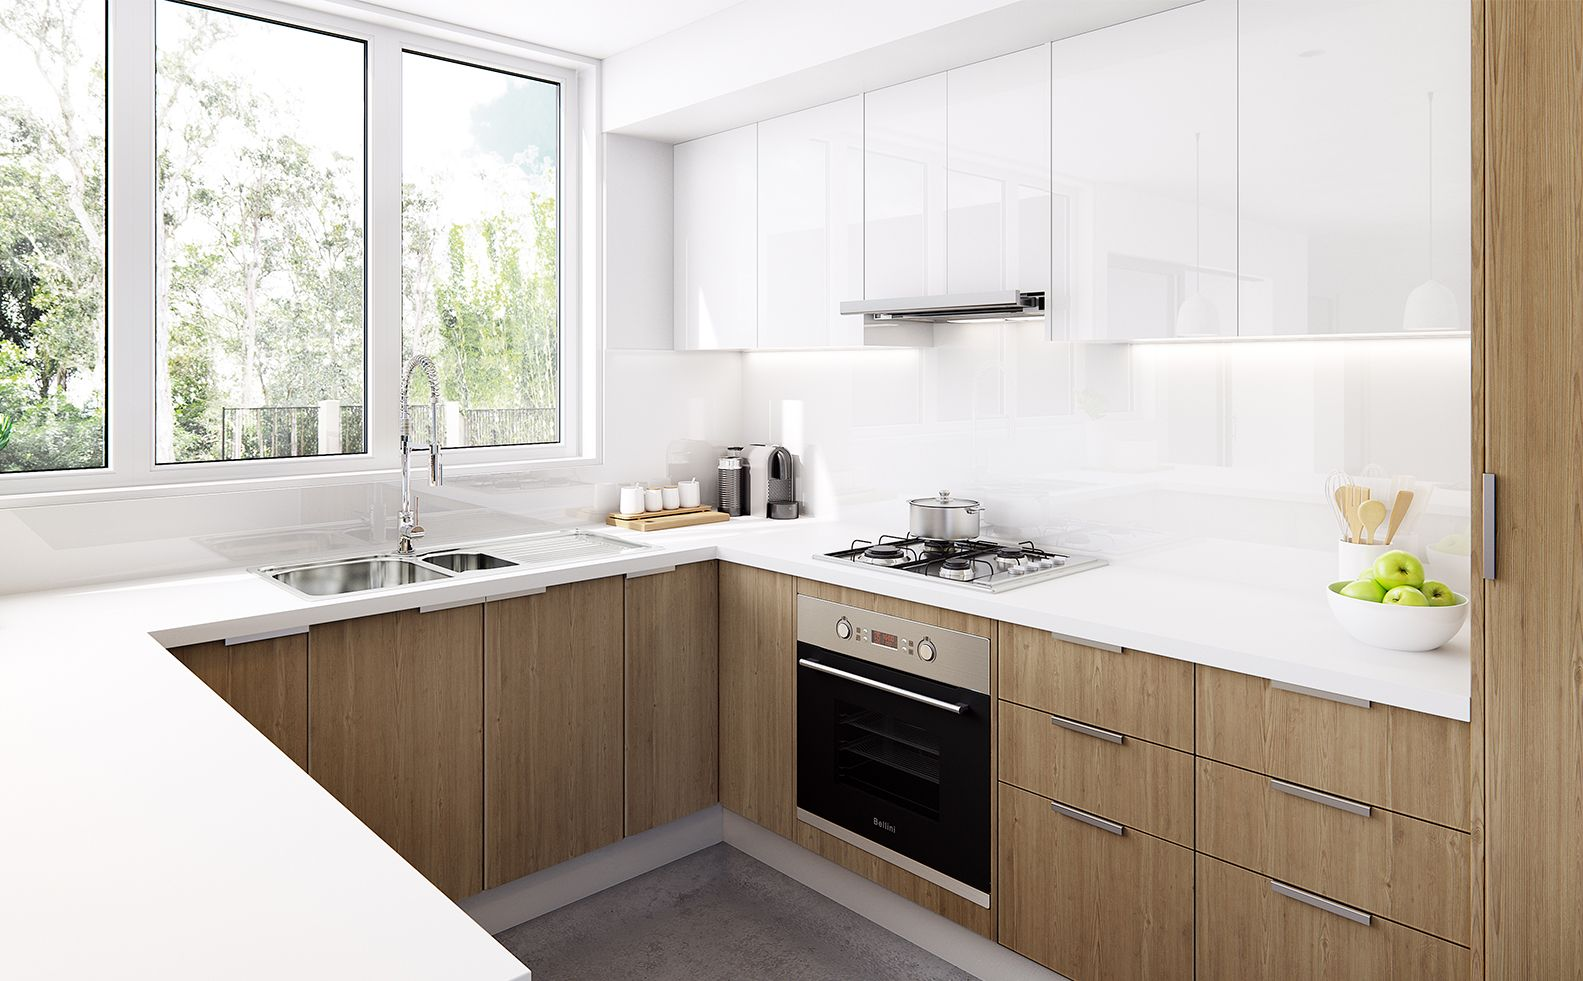 Kitchen Inspiration Gallery Bunnings Warehouse white